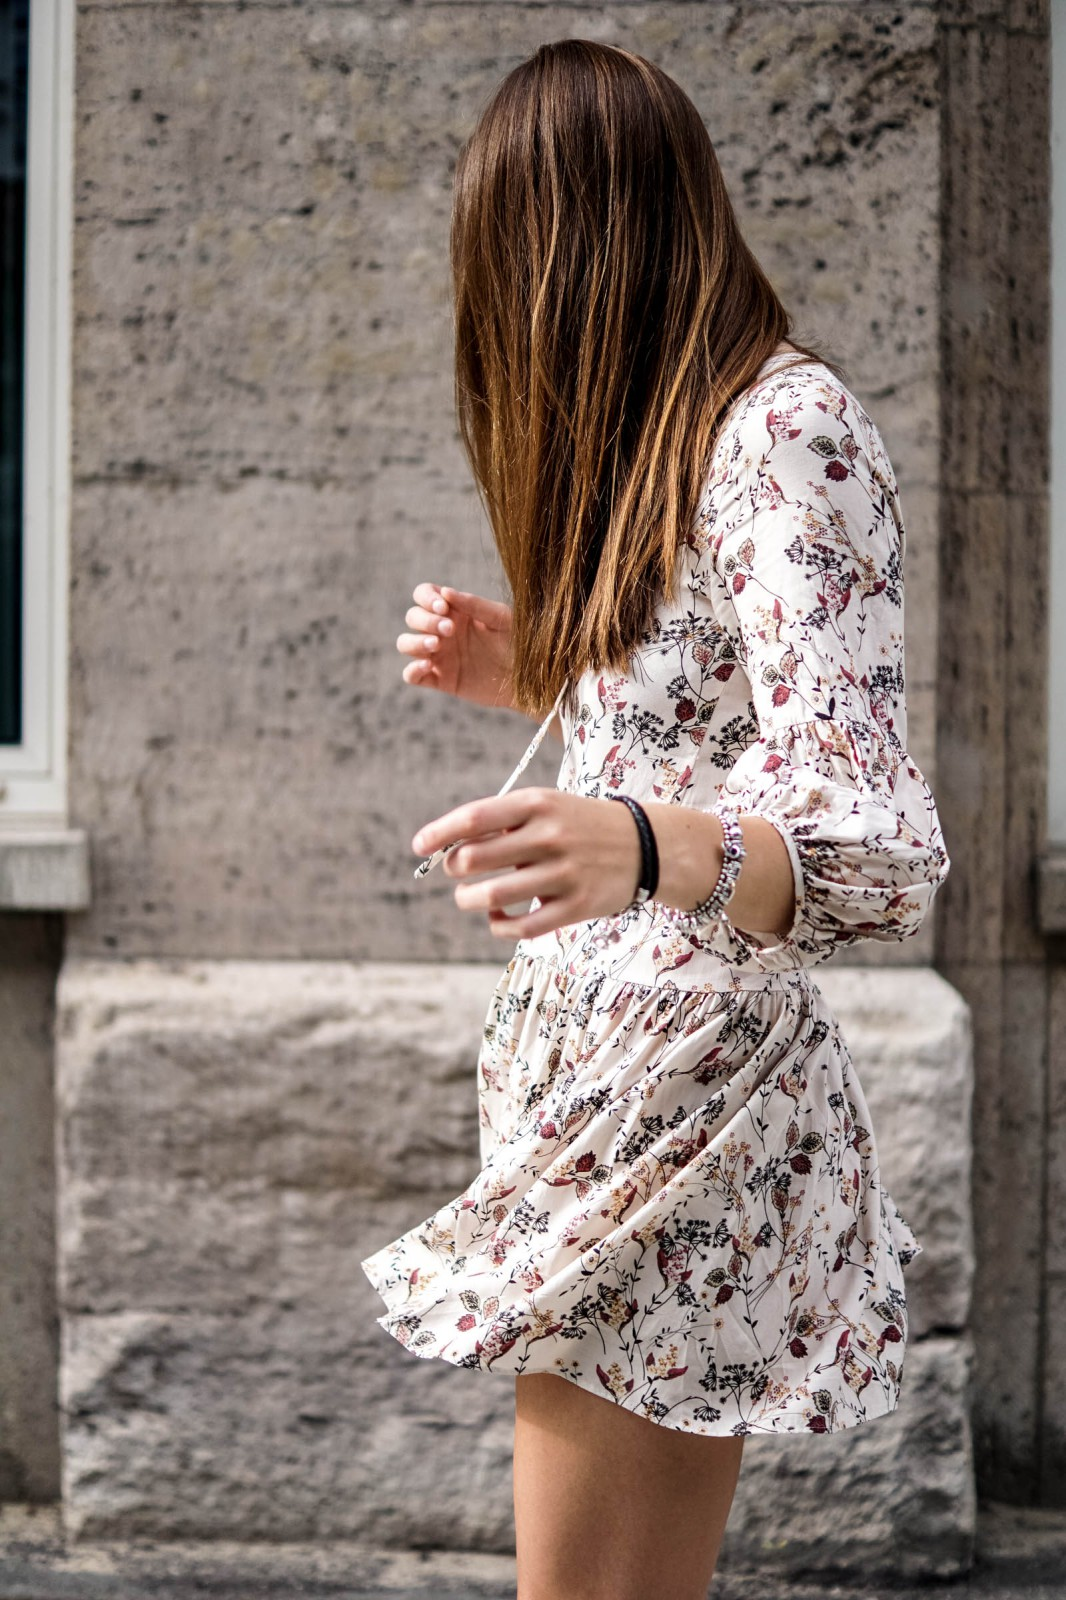 How to wear a flower dress